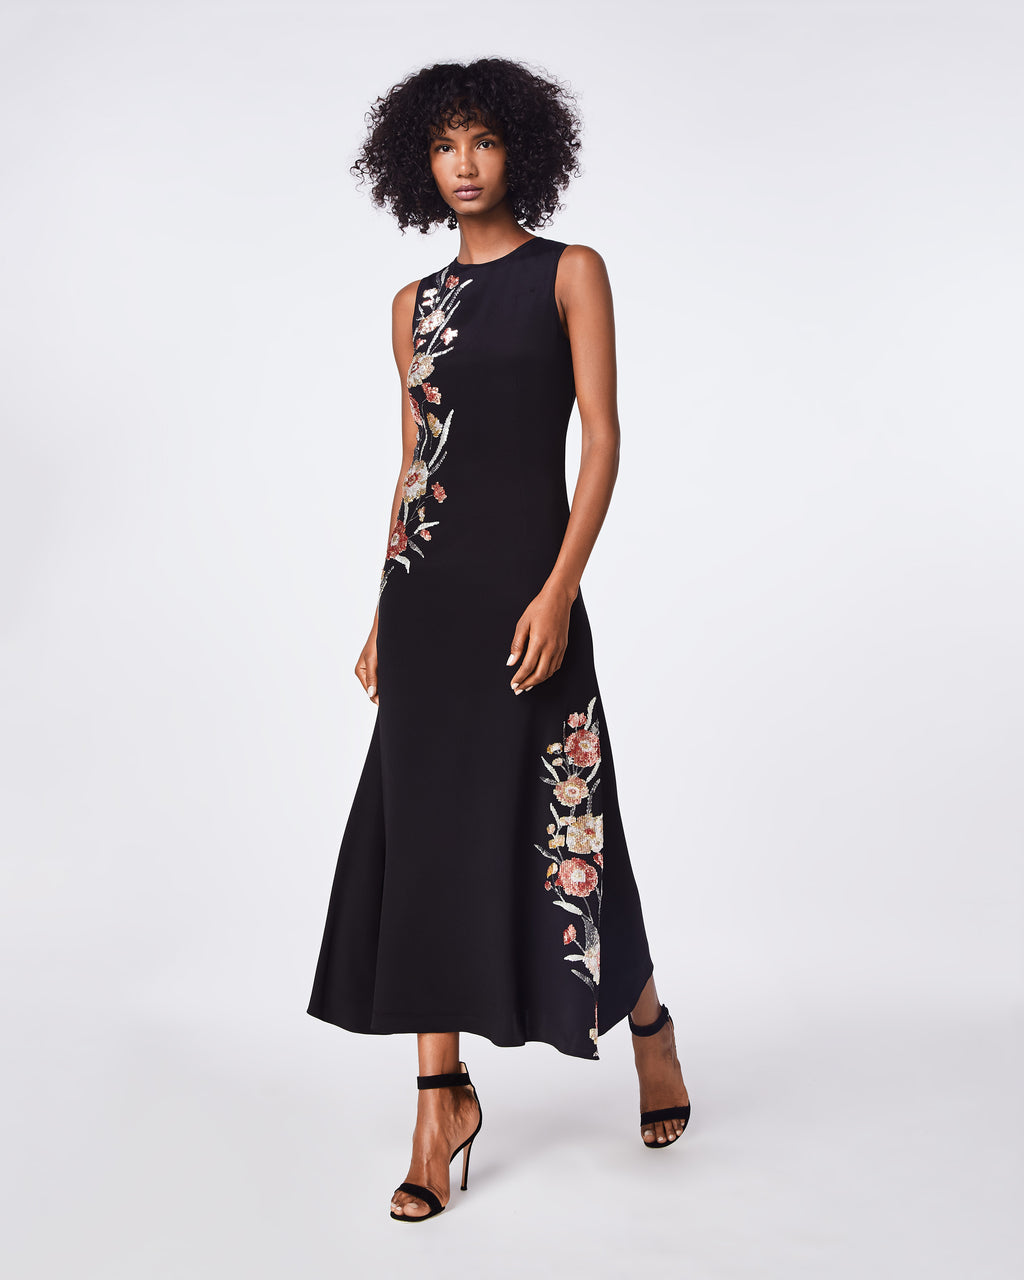 FA10010 - FALLING FLOWERS EMBROIDERY DEMI LENGTH GOWN - dresses - long - THIS BLACK GOWN FEATURES FLORAL EMBROIDERY ADDING A FEMININE TOUCH TO A CLASS BLACK DRESS STYLE. ITS HIGH NECKLINE AND FITTED THROUGH THE WAIST MAKES IT A GREAT OCCASION PIECE.